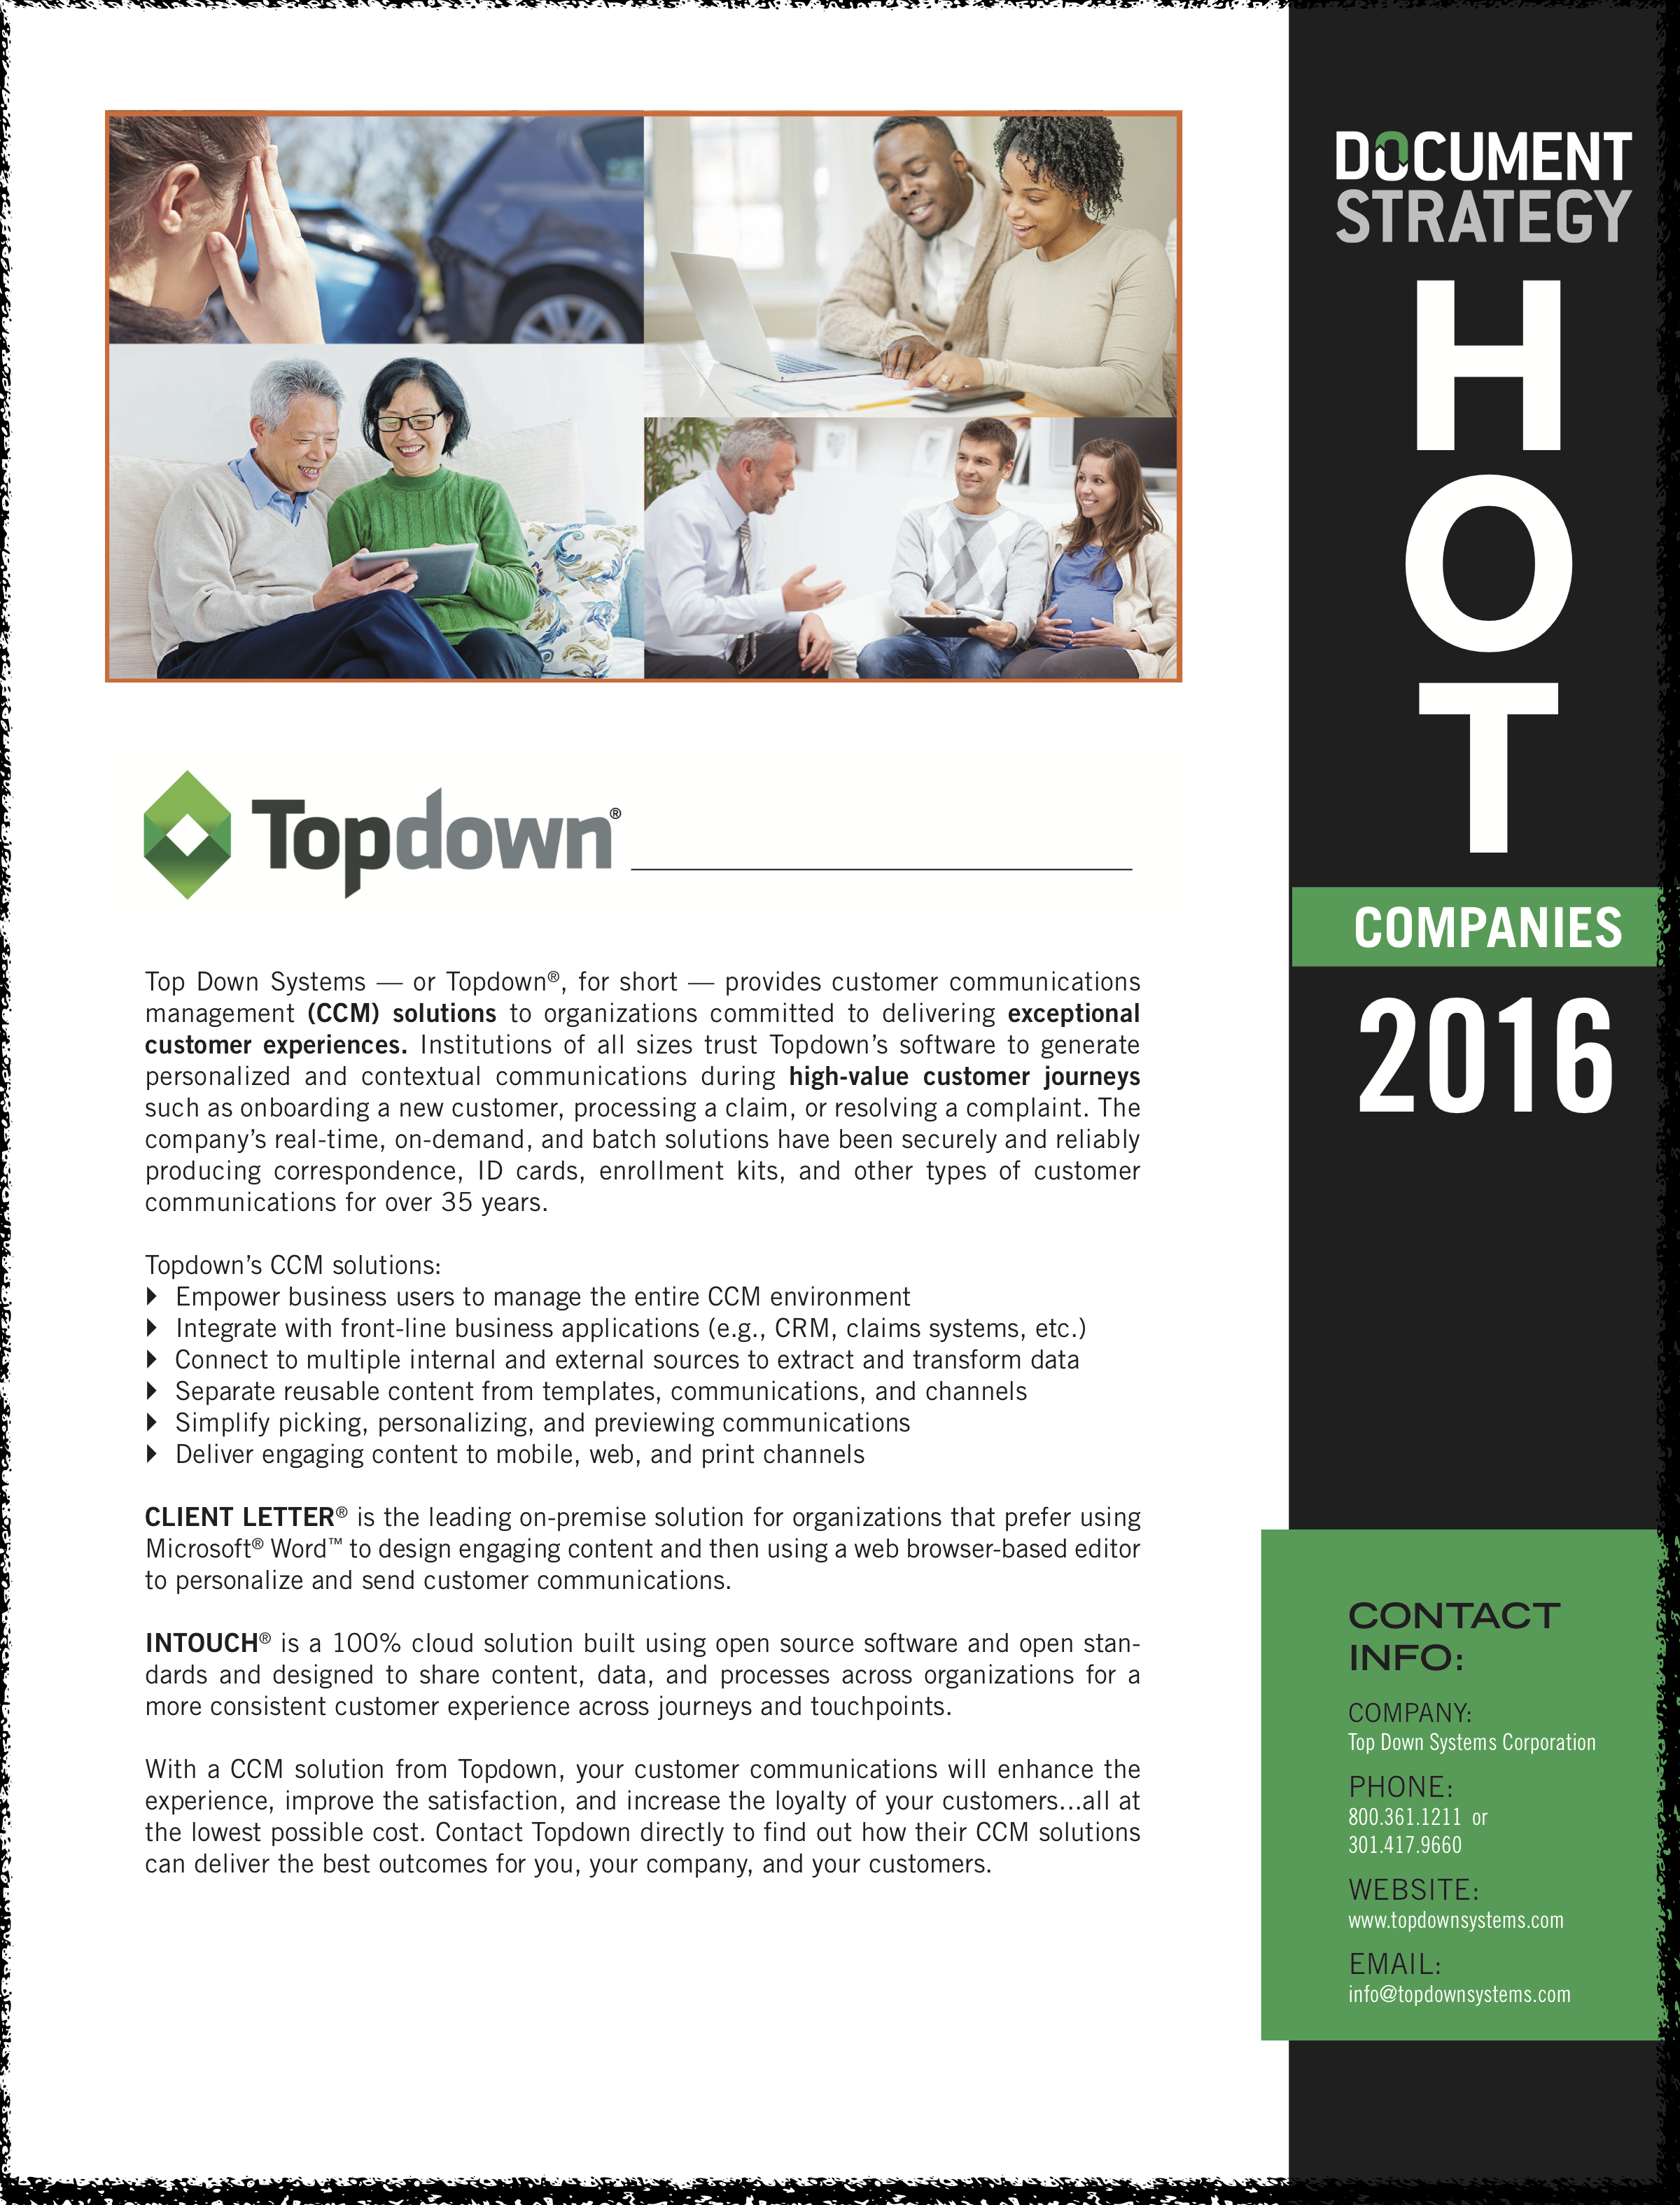 DOCUMENT Strategy 2016 HOT Company